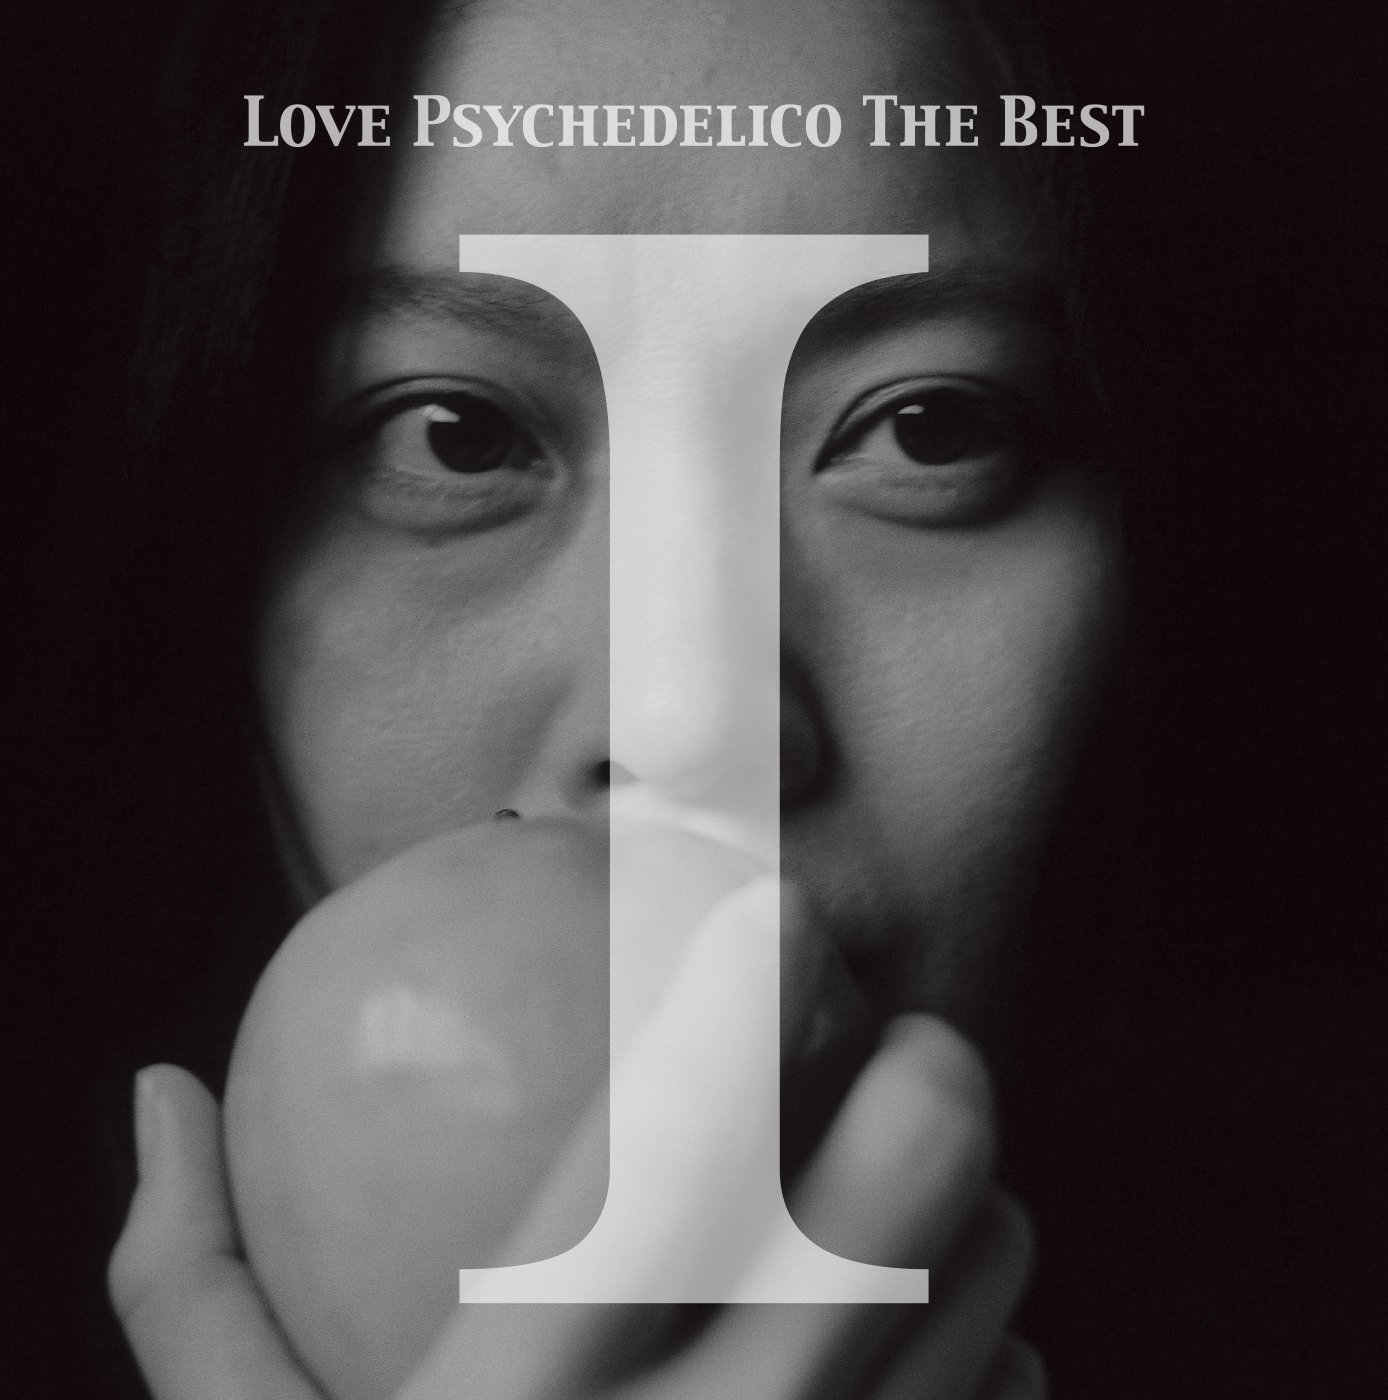 [Album] THE BEST SPECIAL BOX - LOVE PSYCHEDELICO (mp3)